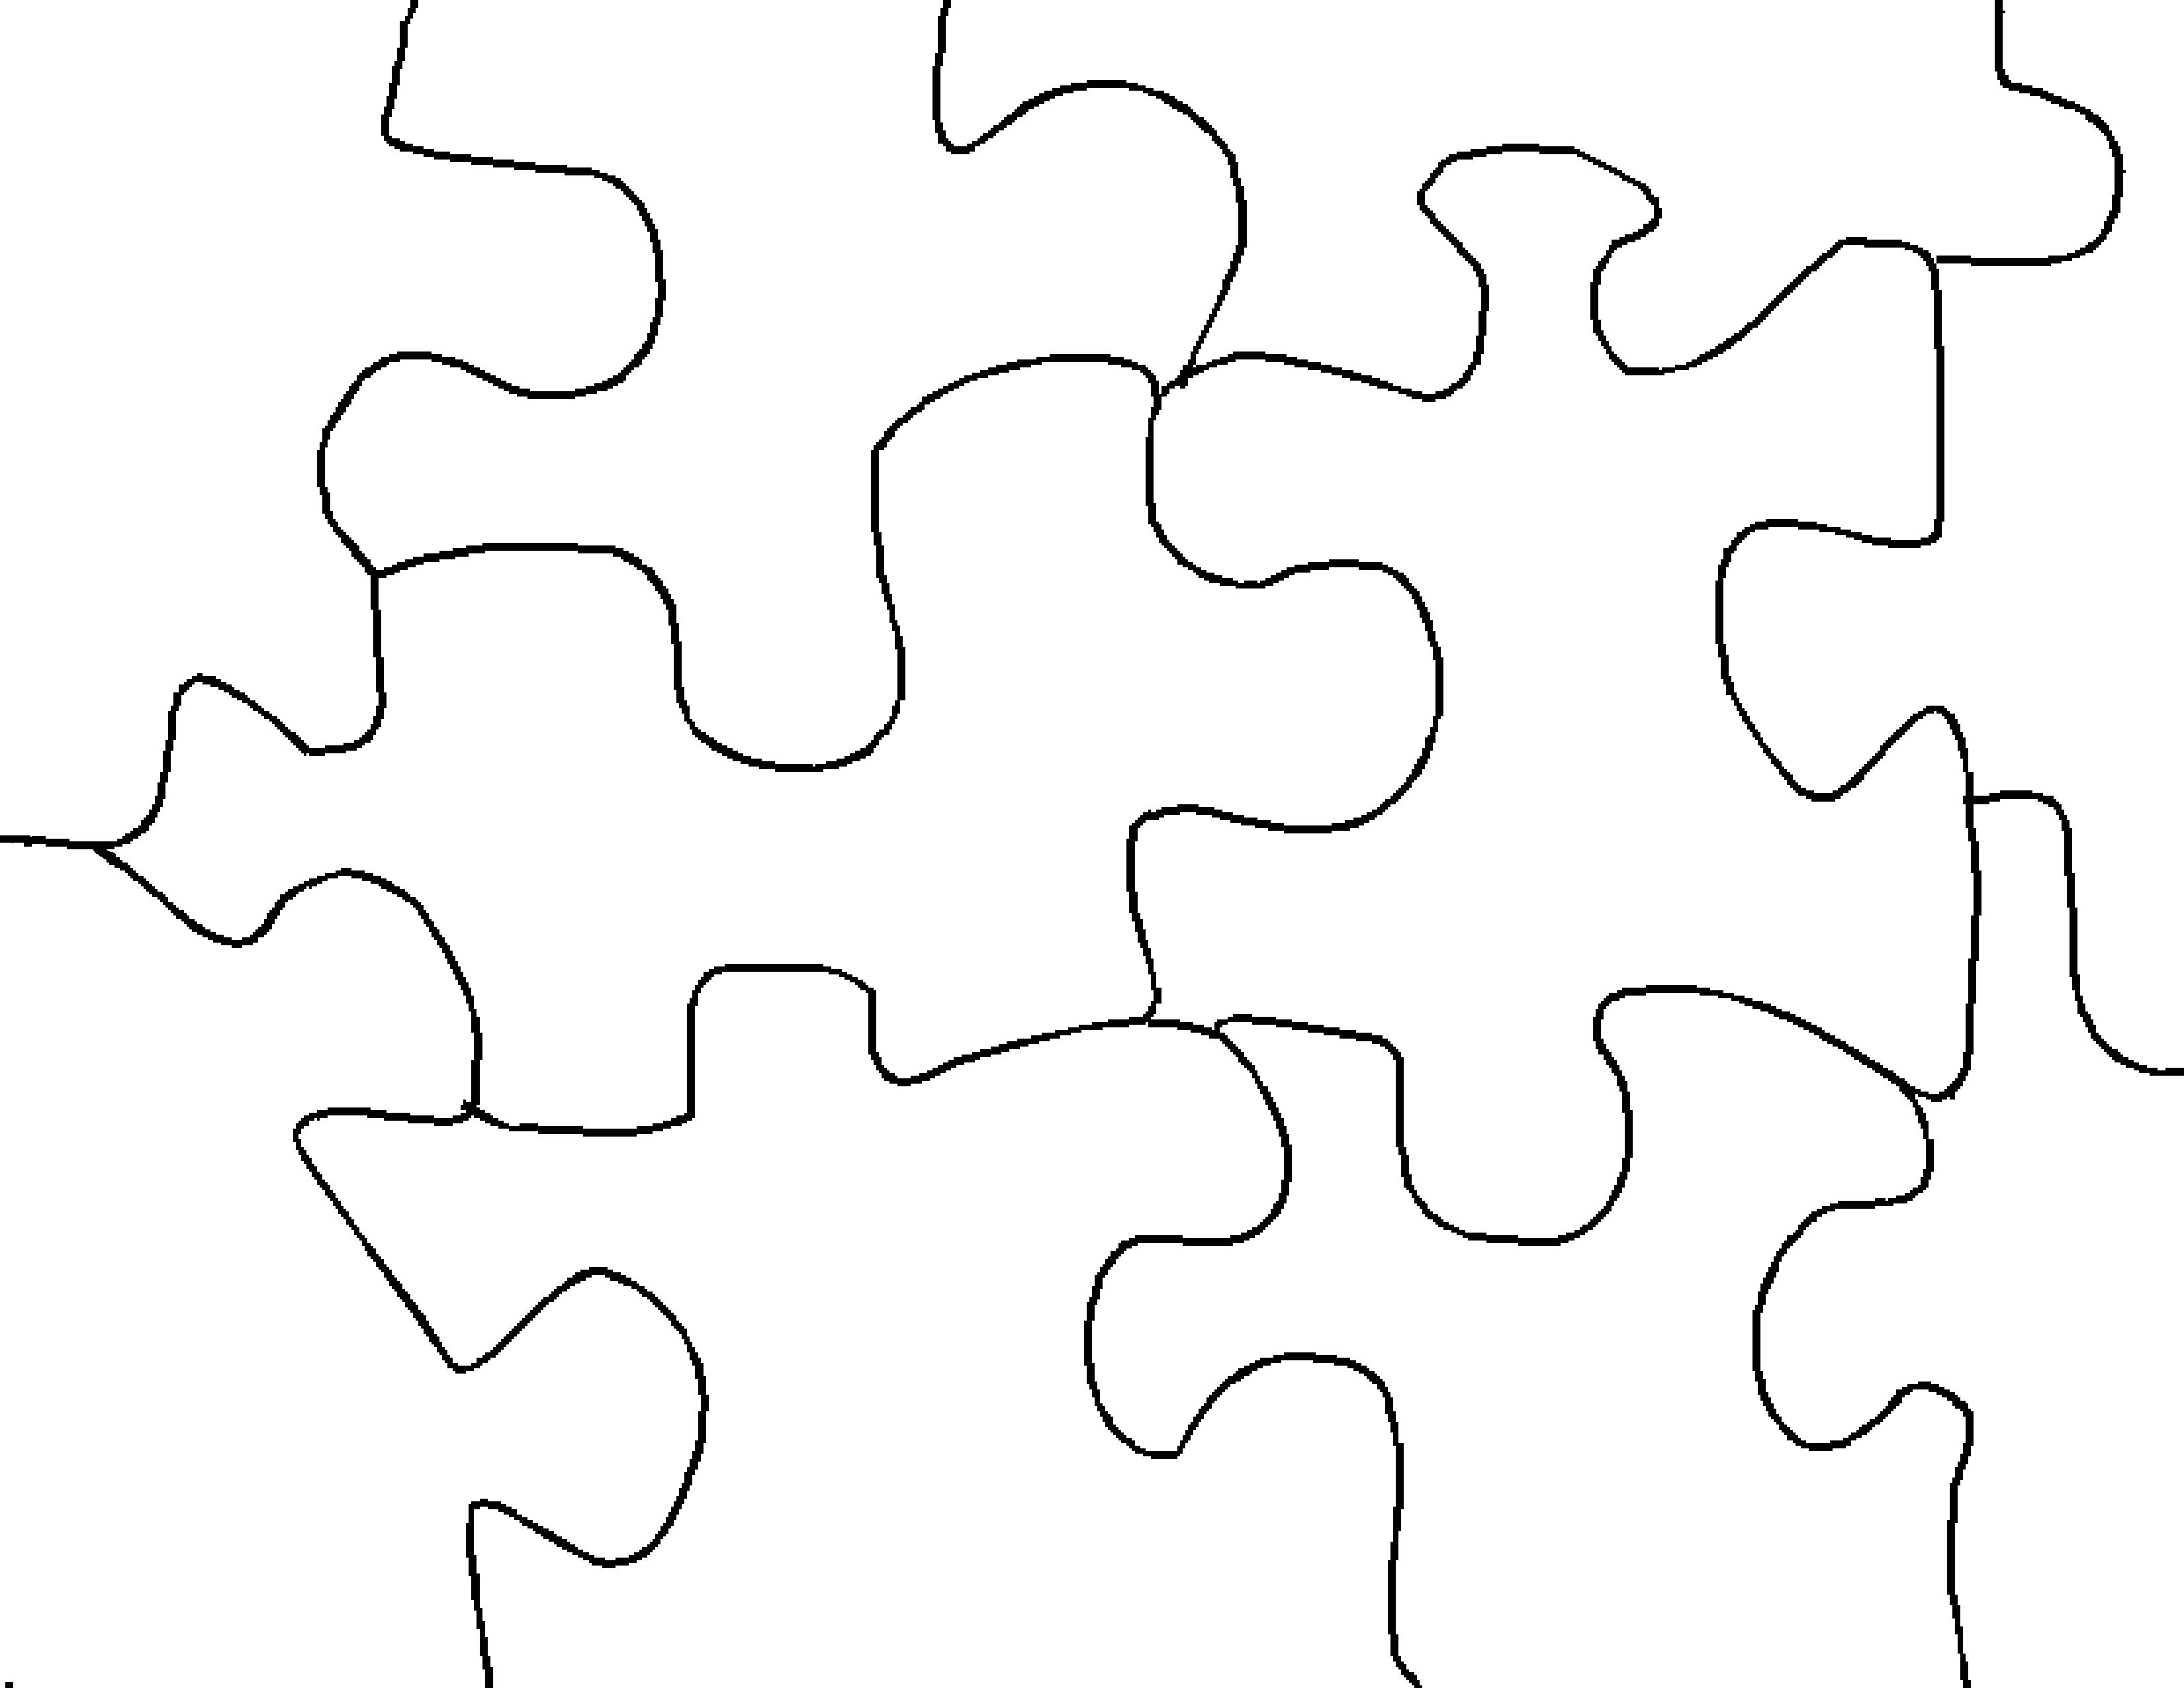 Free Puzzle Template, Download Free Clip Art, Free Clip Art.